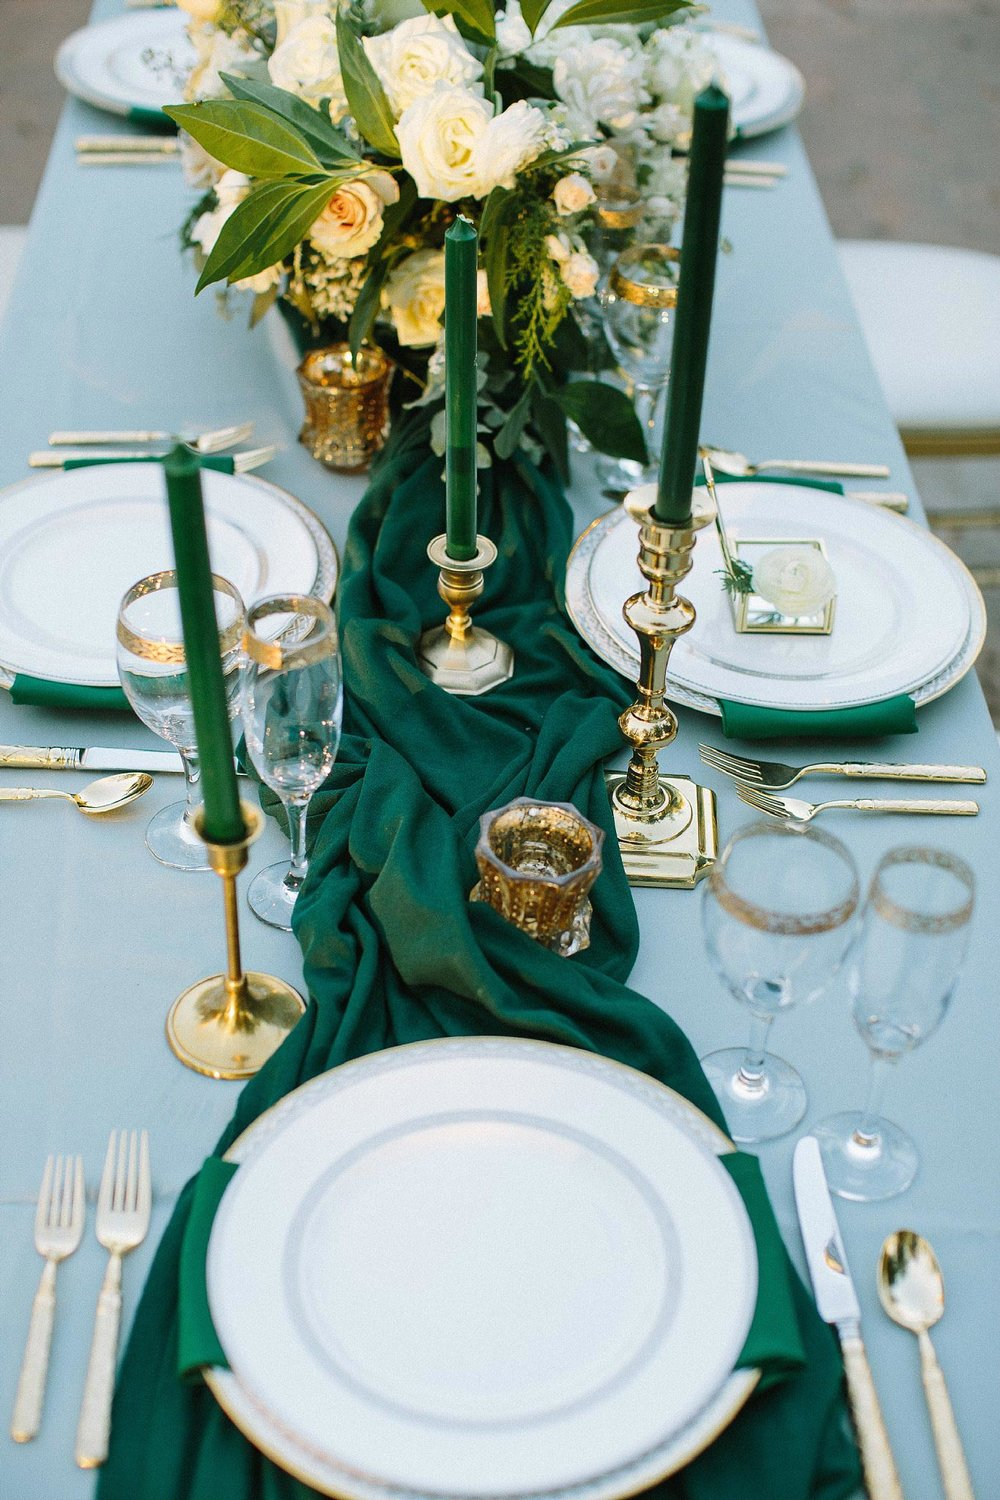 Greenery_Pantone-Color-of-the-Year-2017_Mansfield-TX_Aristide-Mansfield_Fort-Worth-and-Dallas-Wedding-Planner-and-Designer_Shannon-Rose-Events_0024.jpg